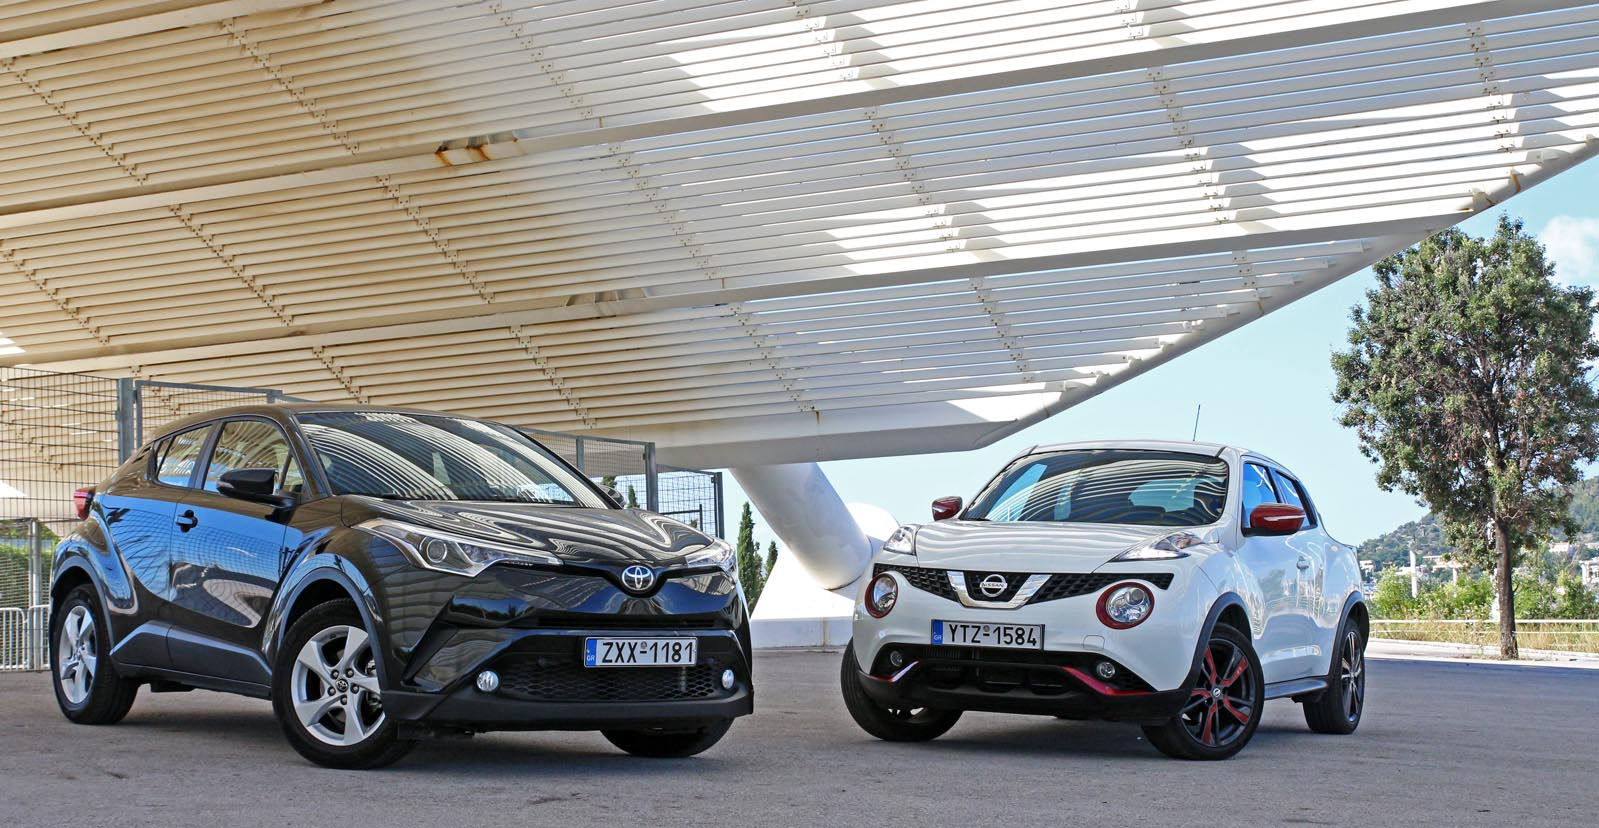 Photo of Nissan Juke 1.2 DIG-T vs Toyota C-HR 1.2T [test drive]